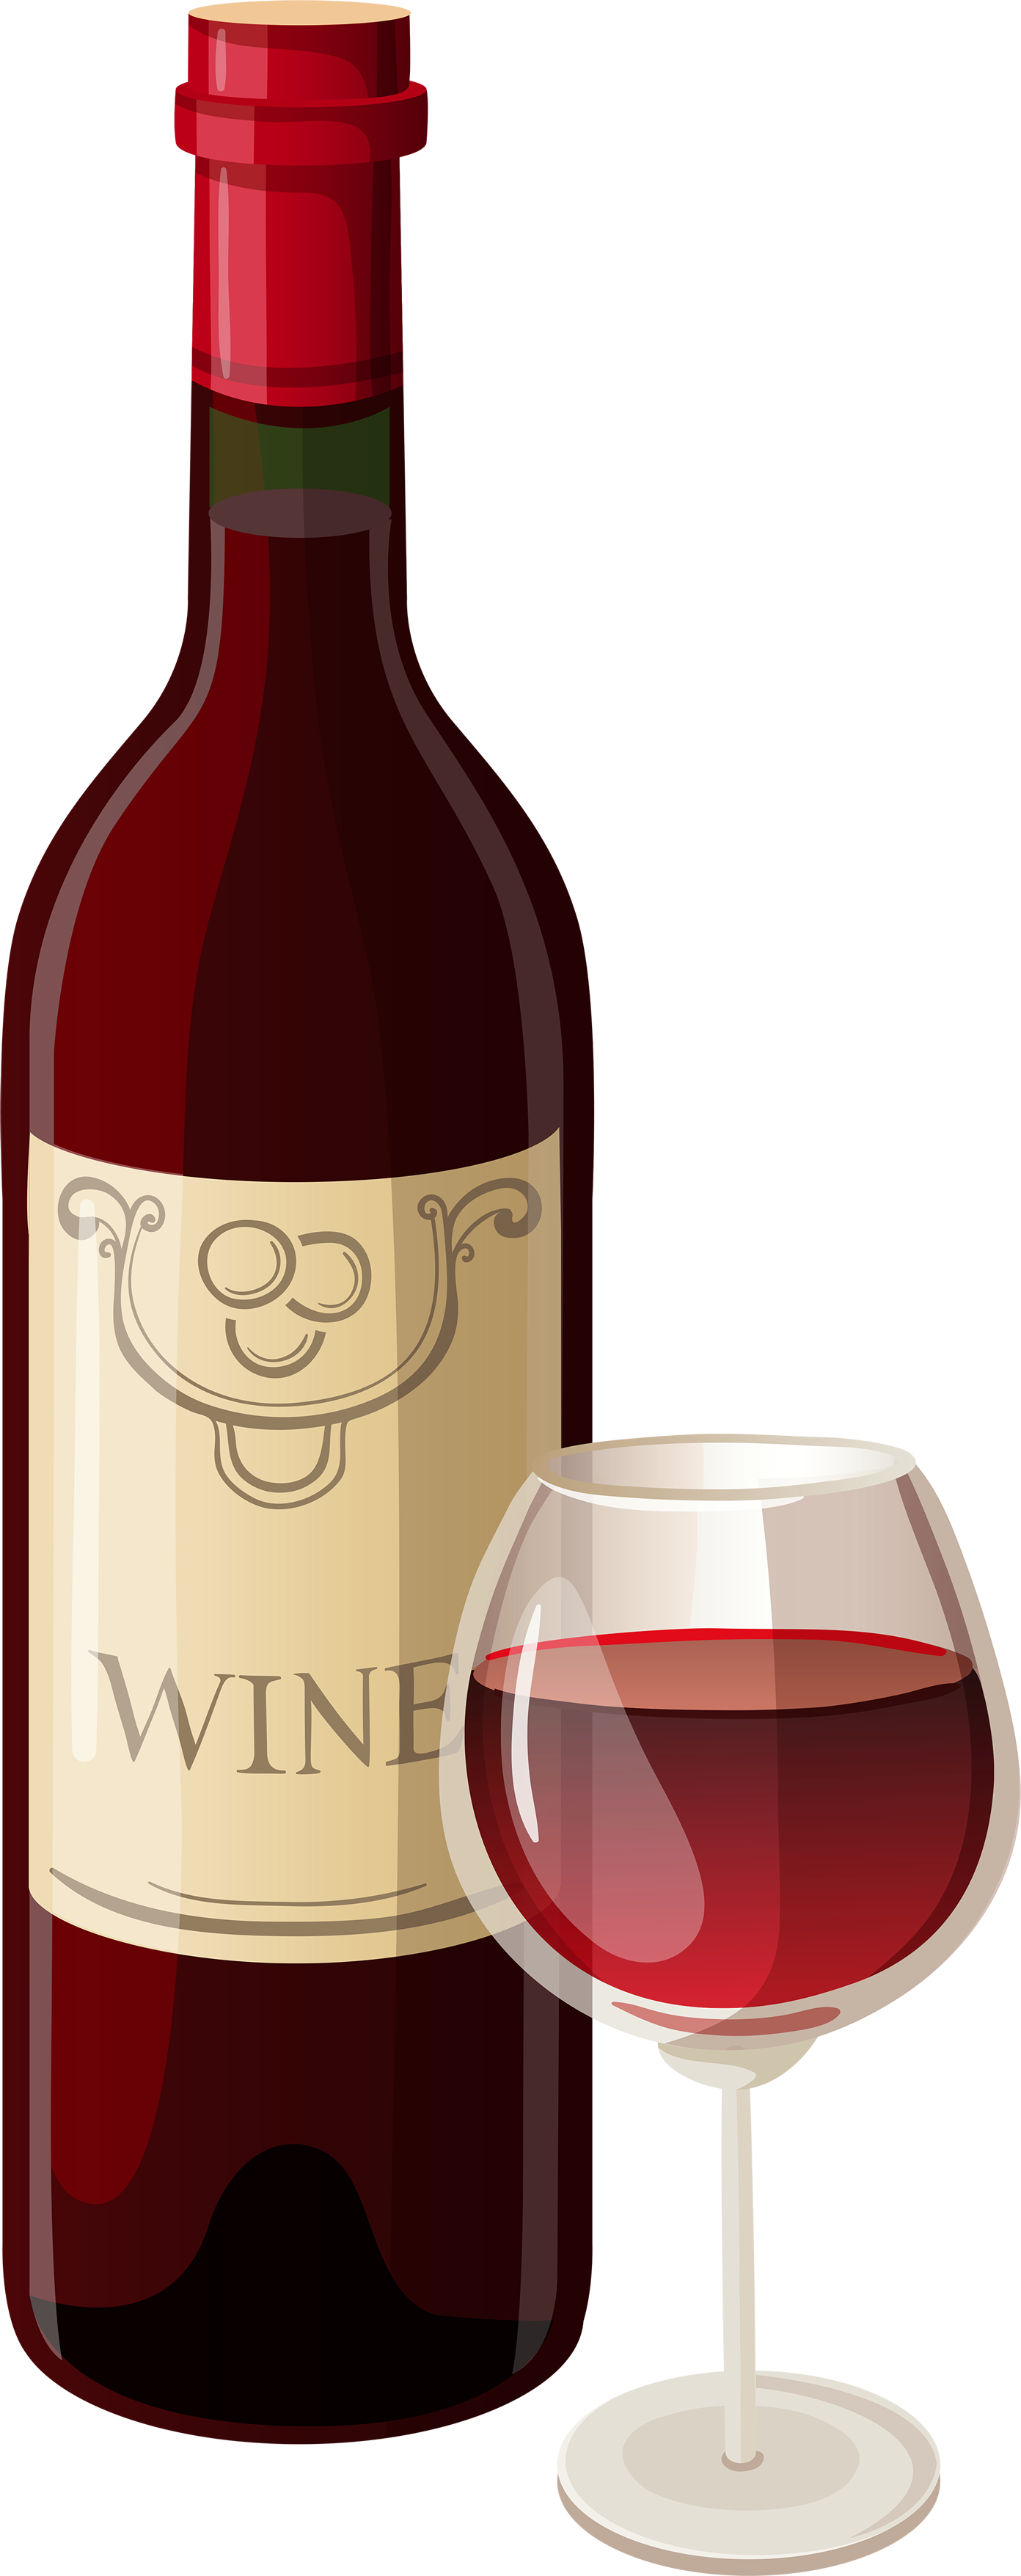 medium resolution of image result for wine bottle and glass clip art